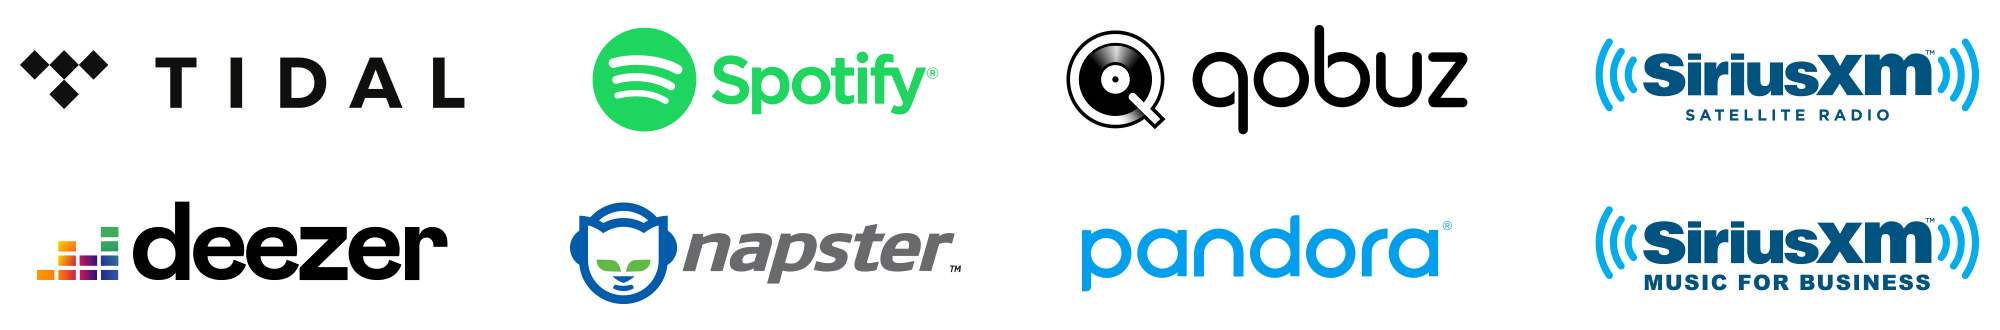 Stream Tidal, Deezer, Qobuz, Spotify, Pandora, Napster and Sirius from within the MusicCast app